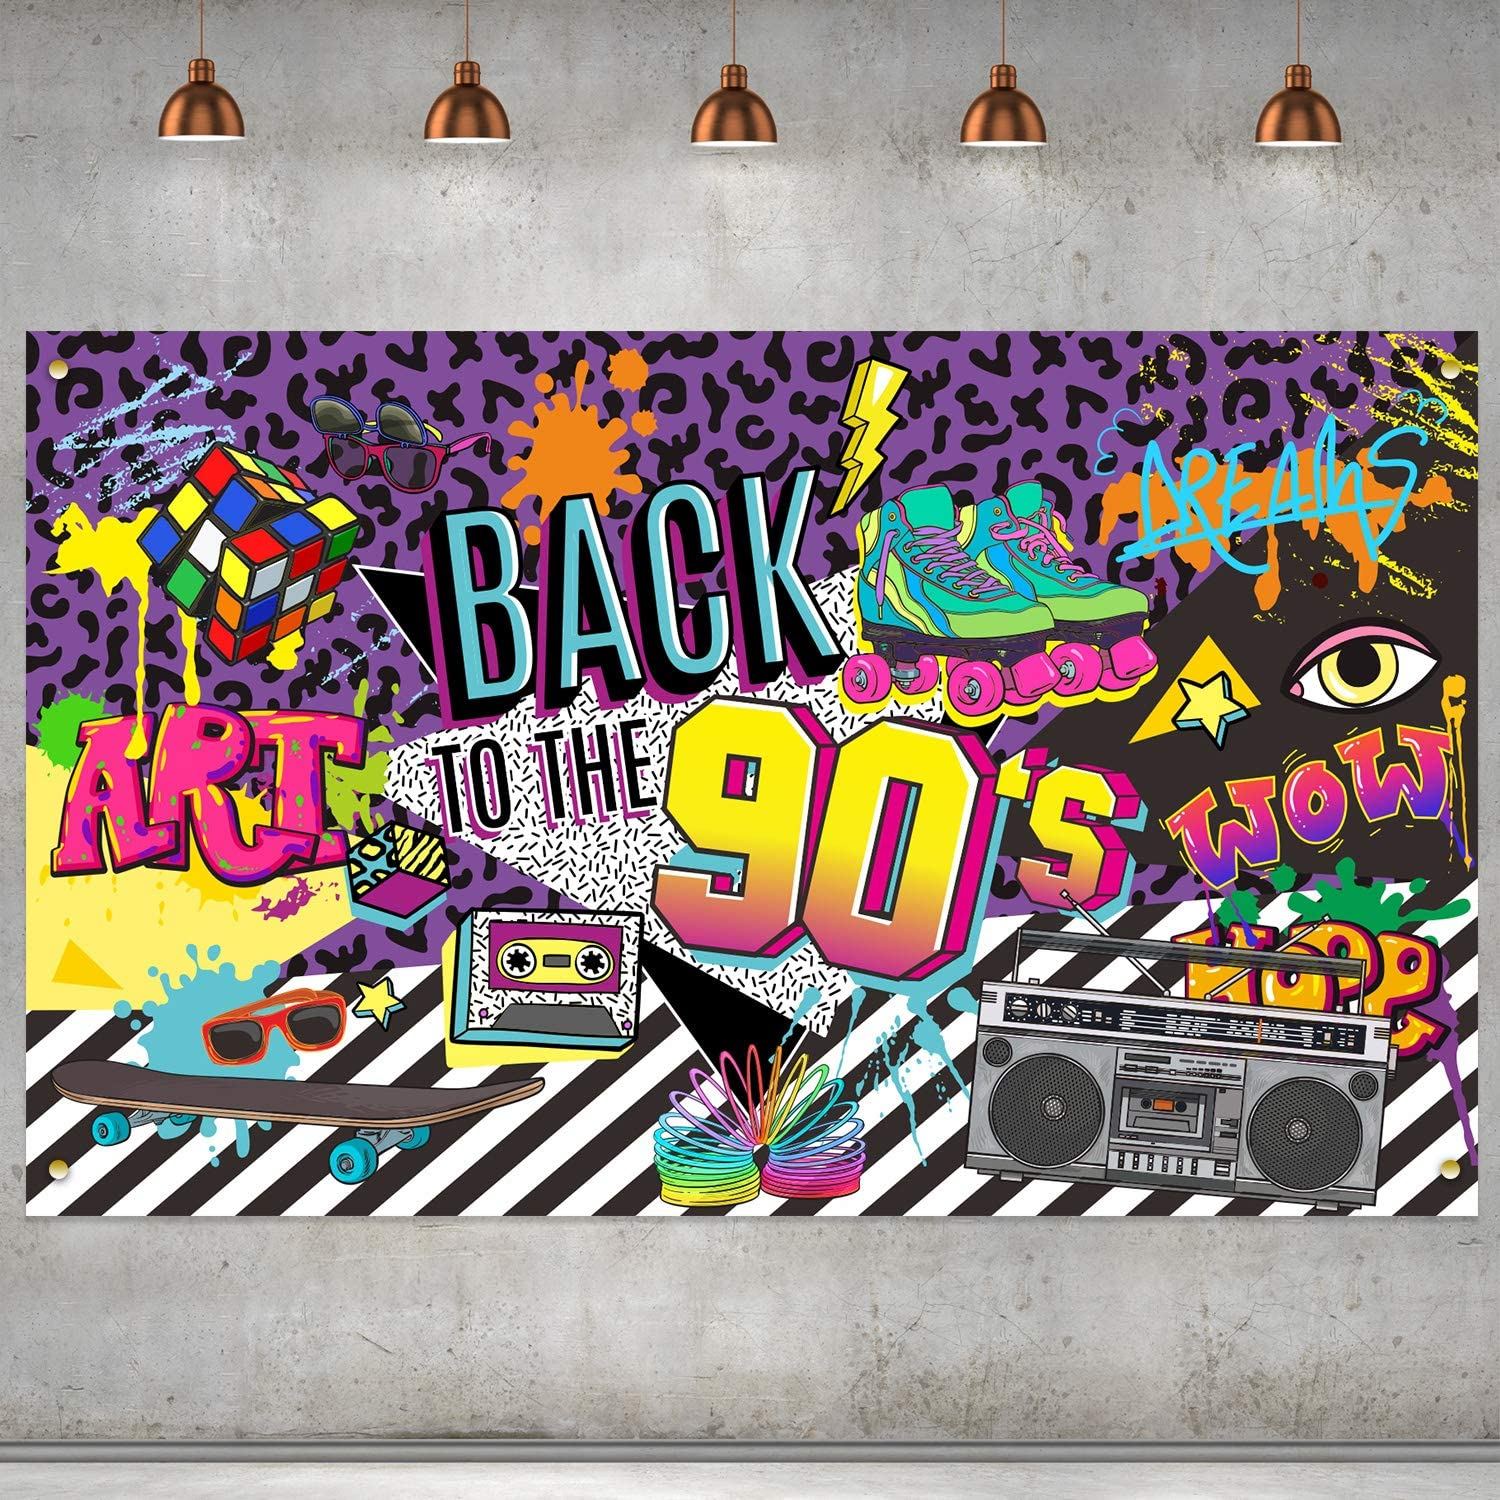 Amazon Com 90s Theme Backdrop Hip Hop Graffiti Back To 90 S Party Banner Background 72 8x43 3 Inch Fabric Wall Table Decorations Photo Booth Props Kitchen Dining